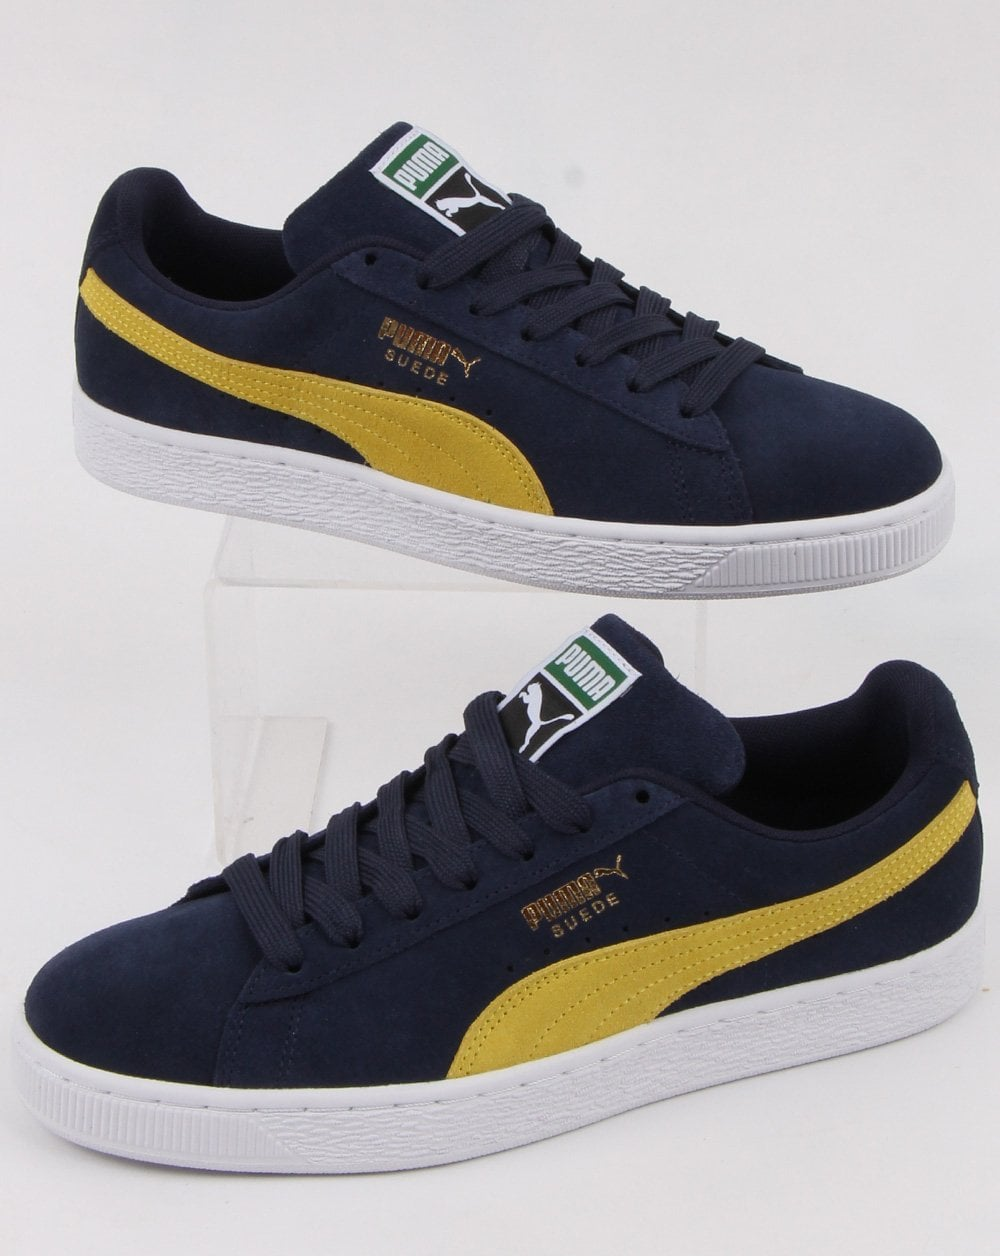 superior quality 27d53 14bc7 Puma Suede Classic Trainer Navy/Yellow